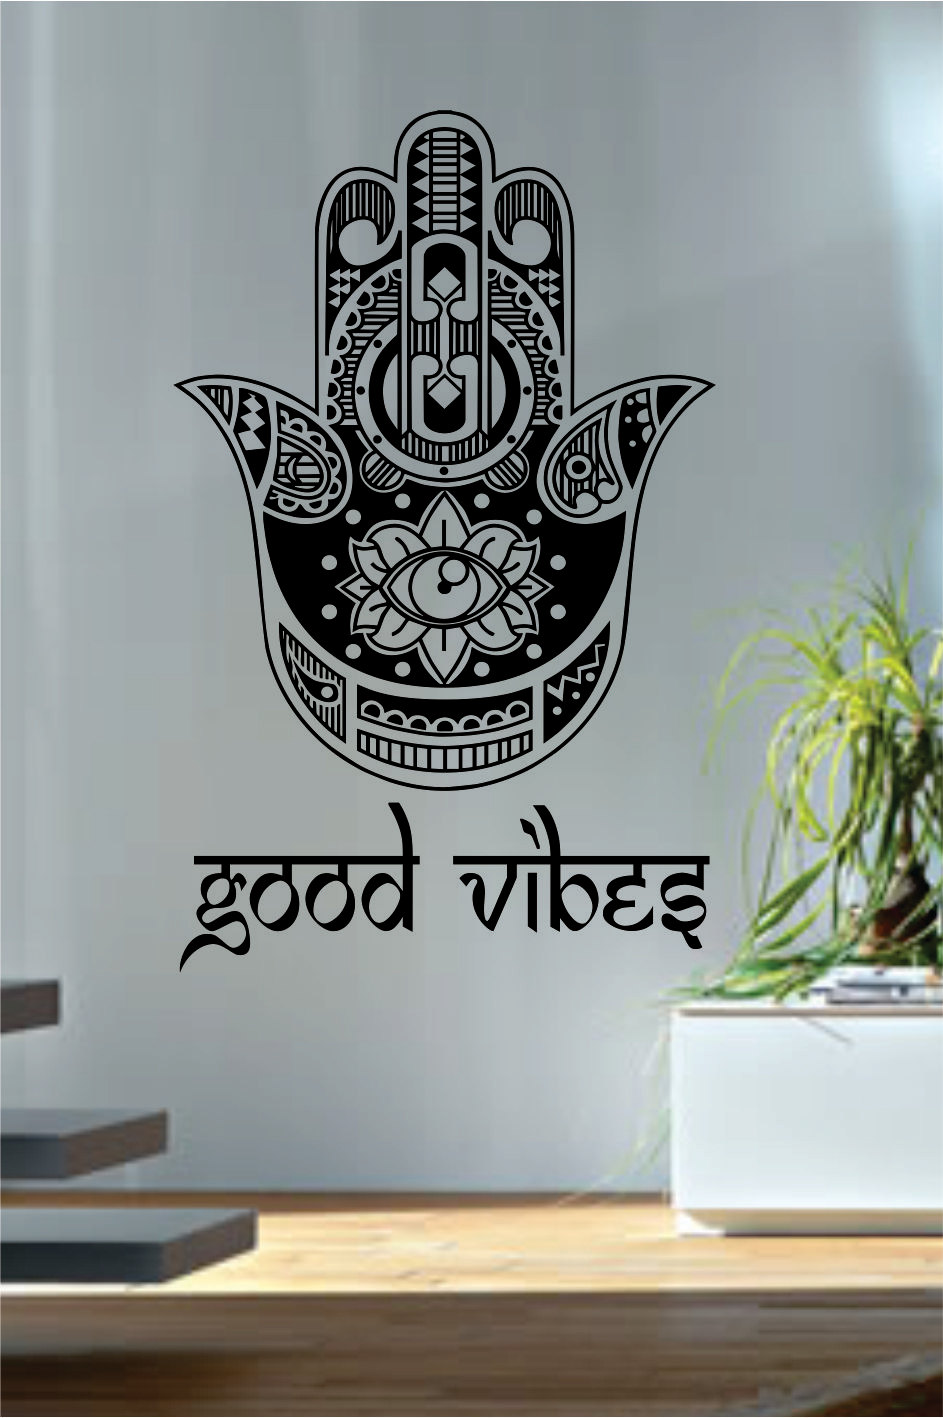 Beautiful Good Vibes Hamsa Wall Decals Fatima Hand Quotes Wall Decor Vinyl Stickers  Yoga Meditation Decor Geometric Wall TattooS 510 In Wall Stickers From Home  ...